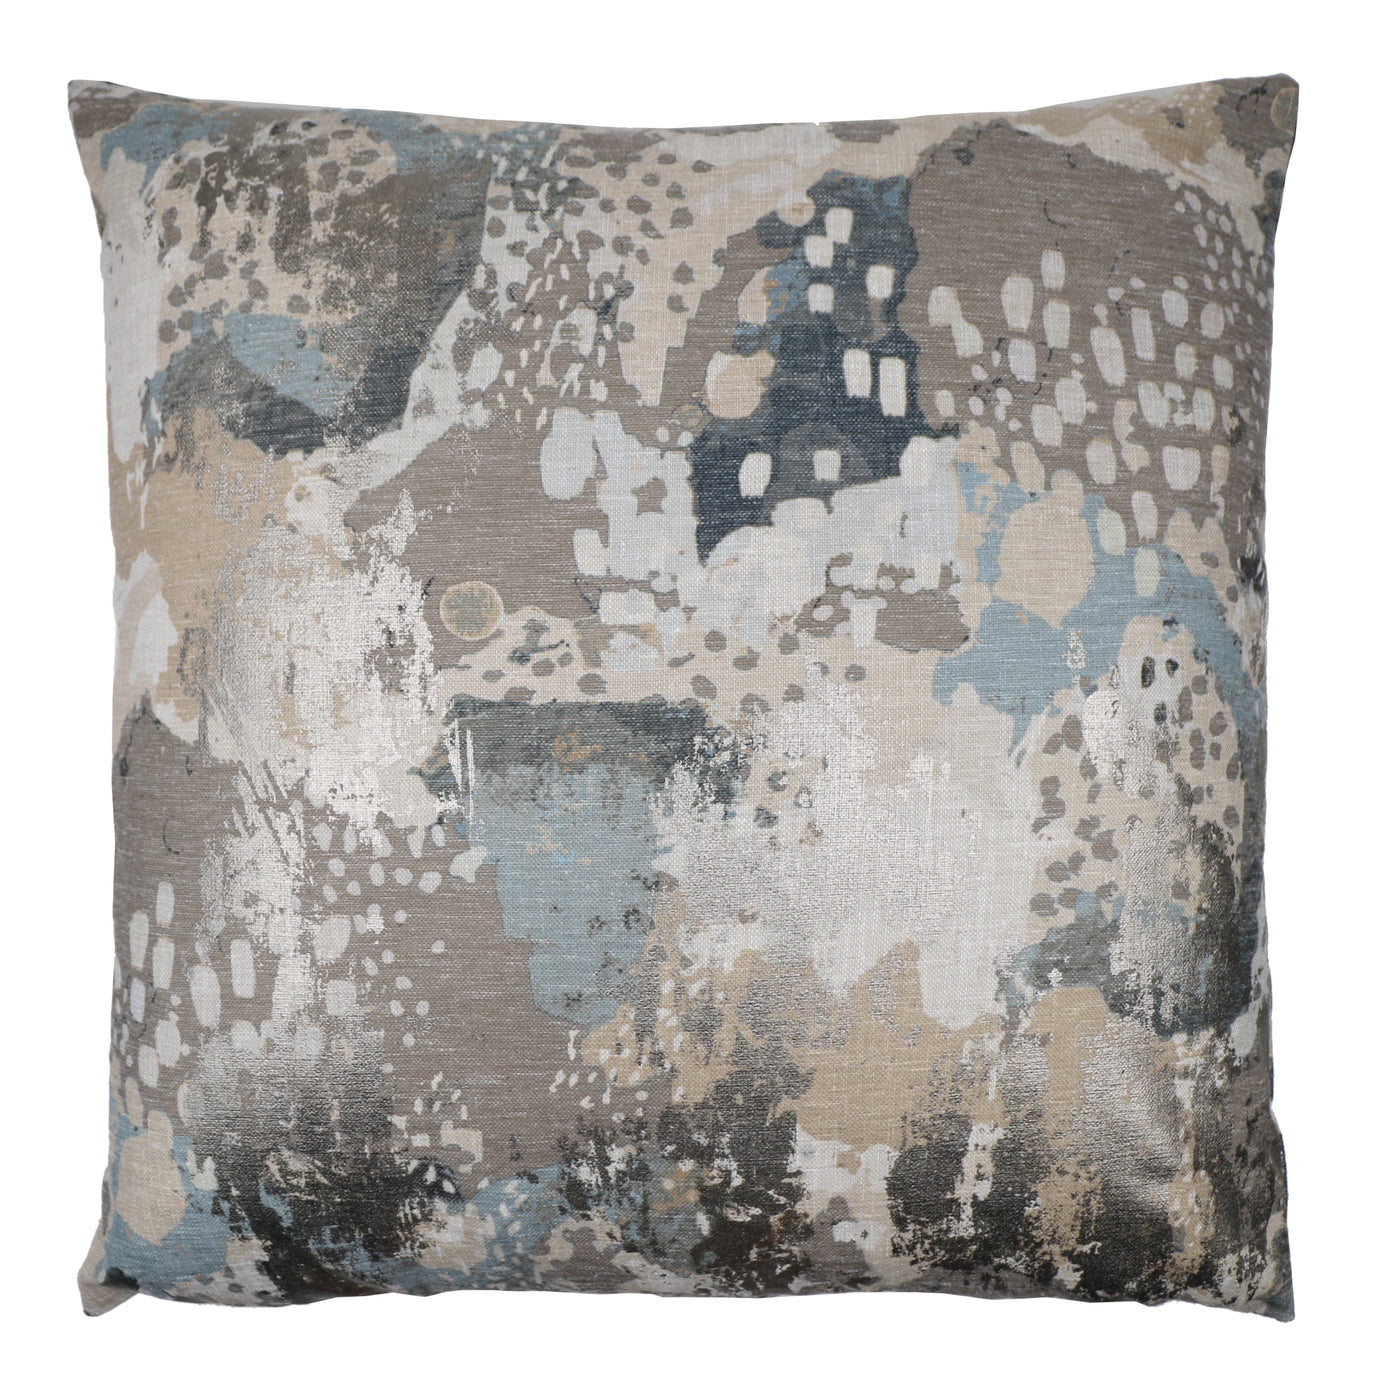 Tillie Pillow - Beach